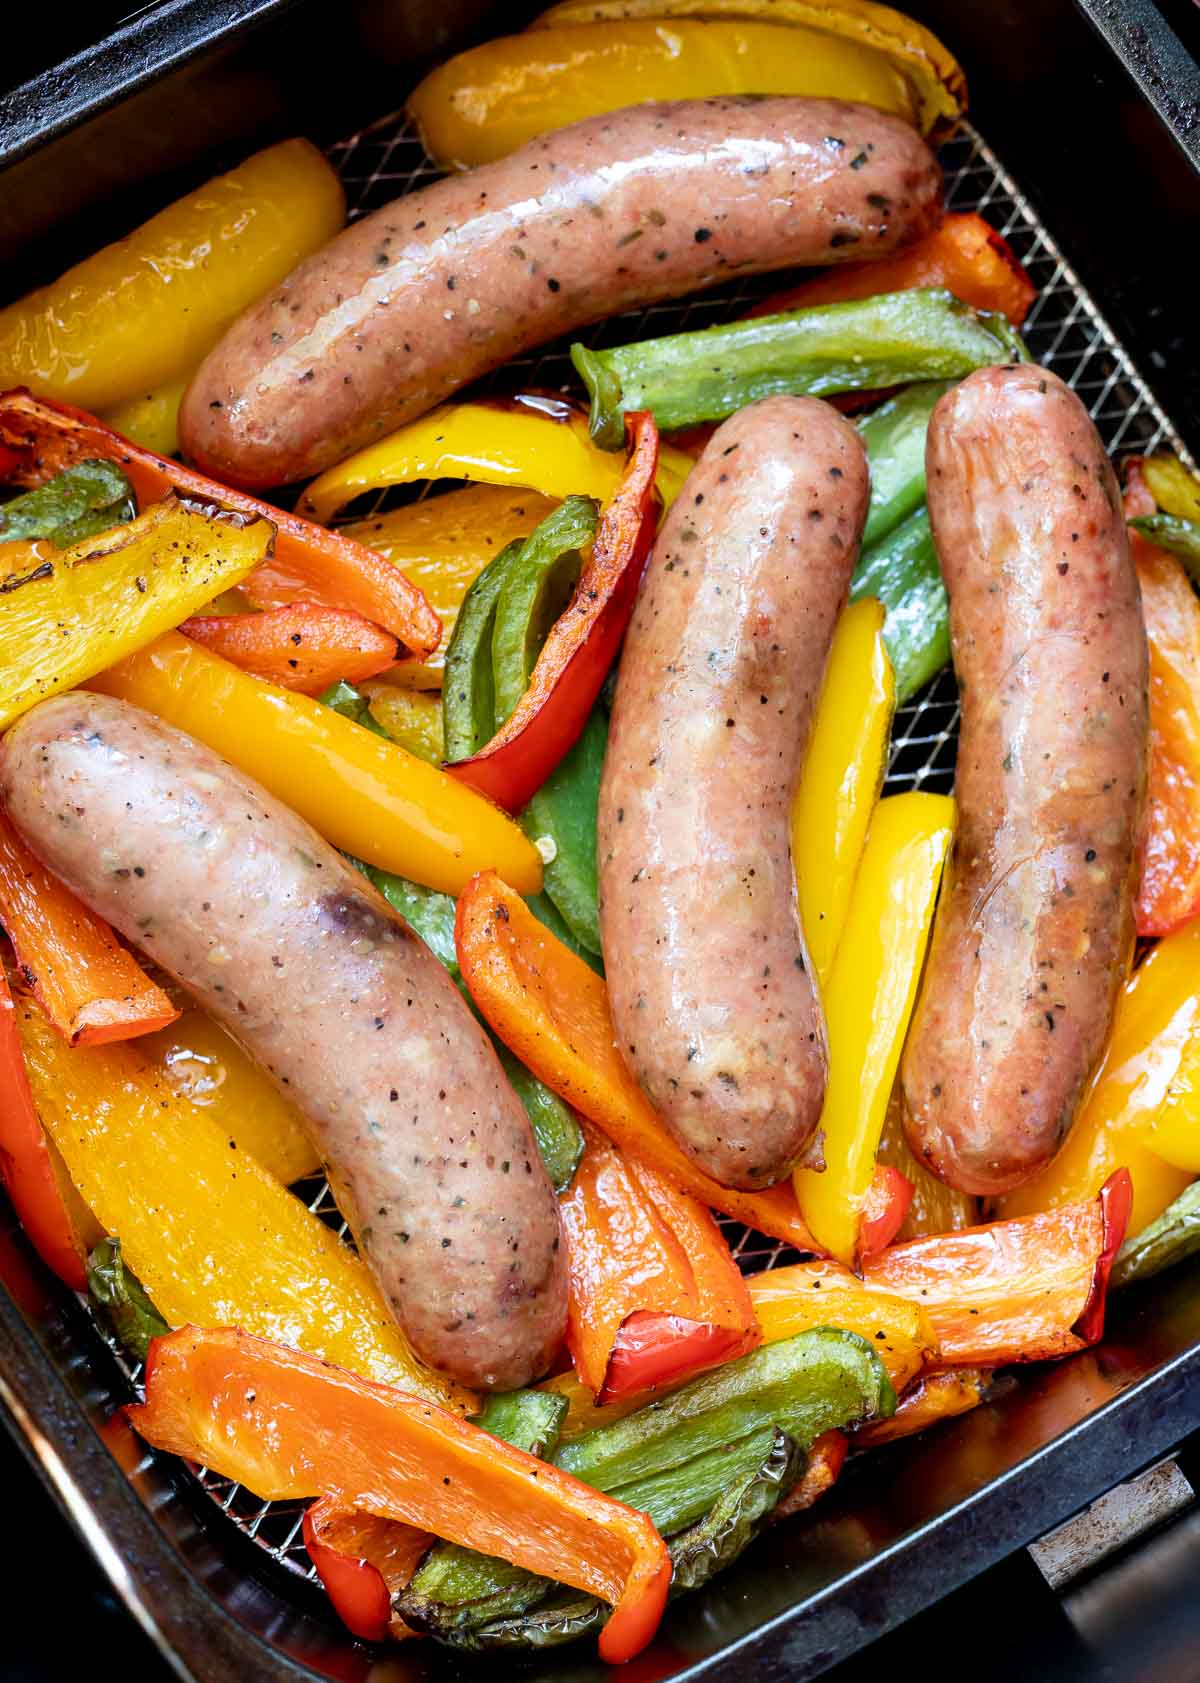 sausages and peppers in air fryer basket